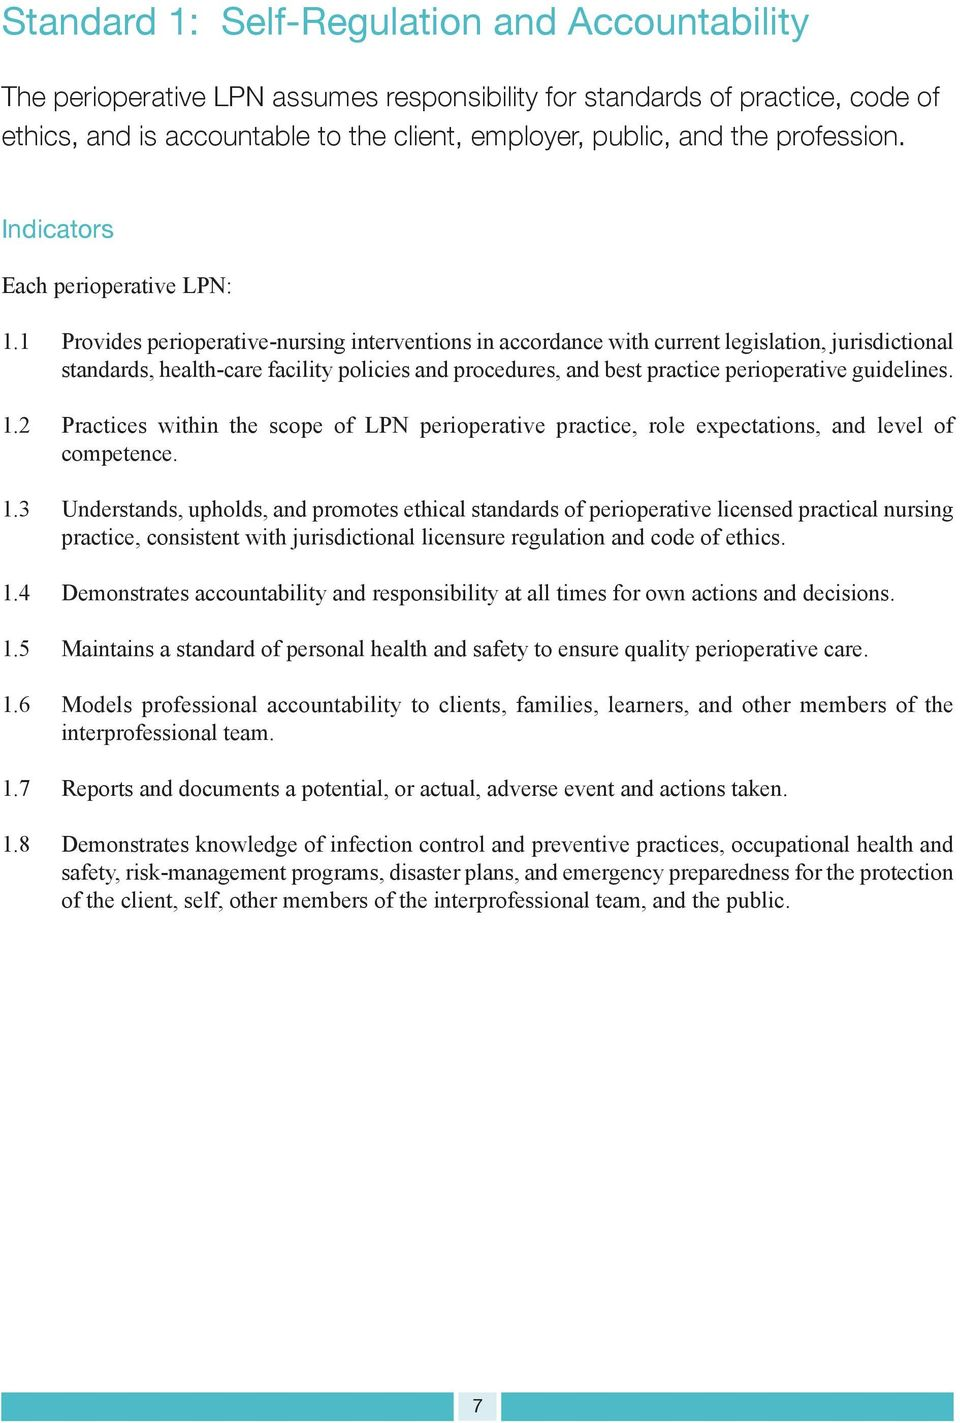 1 Provides perioperative-nursing interventions in accordance with current legislation, jurisdictional standards, health-care facility policies and procedures, and best practice perioperative